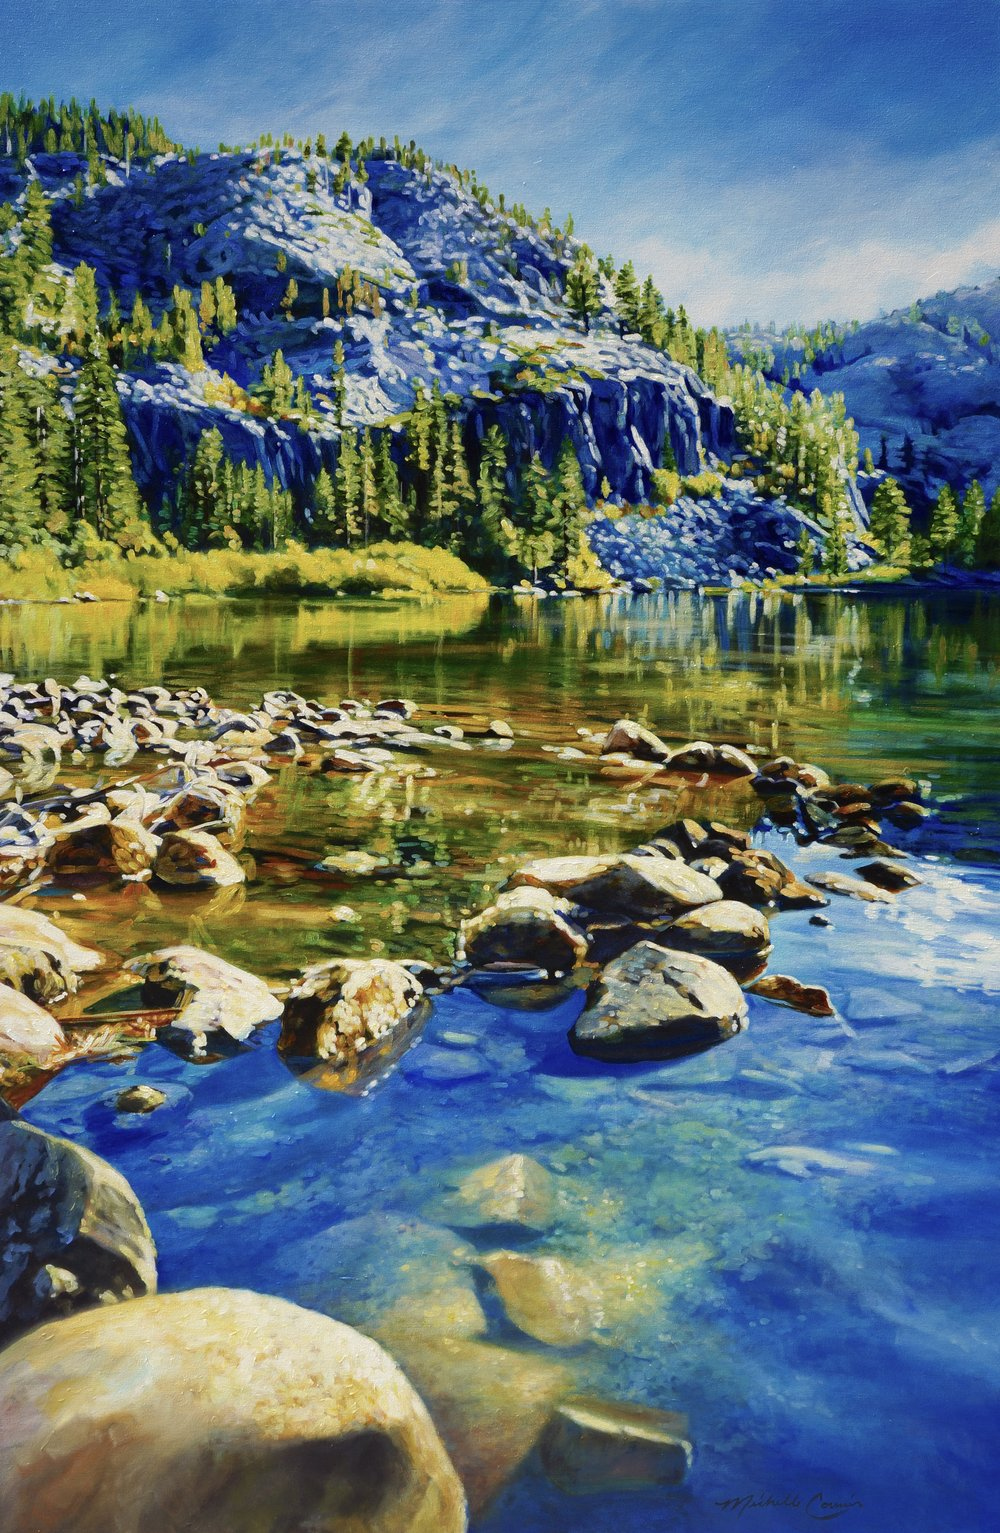 EAGLE LAKE 48X72 IN   $13,500  GICLEE PRINTS AVAILABLE IN VARIES SIZES ON PAPER/CANVAS